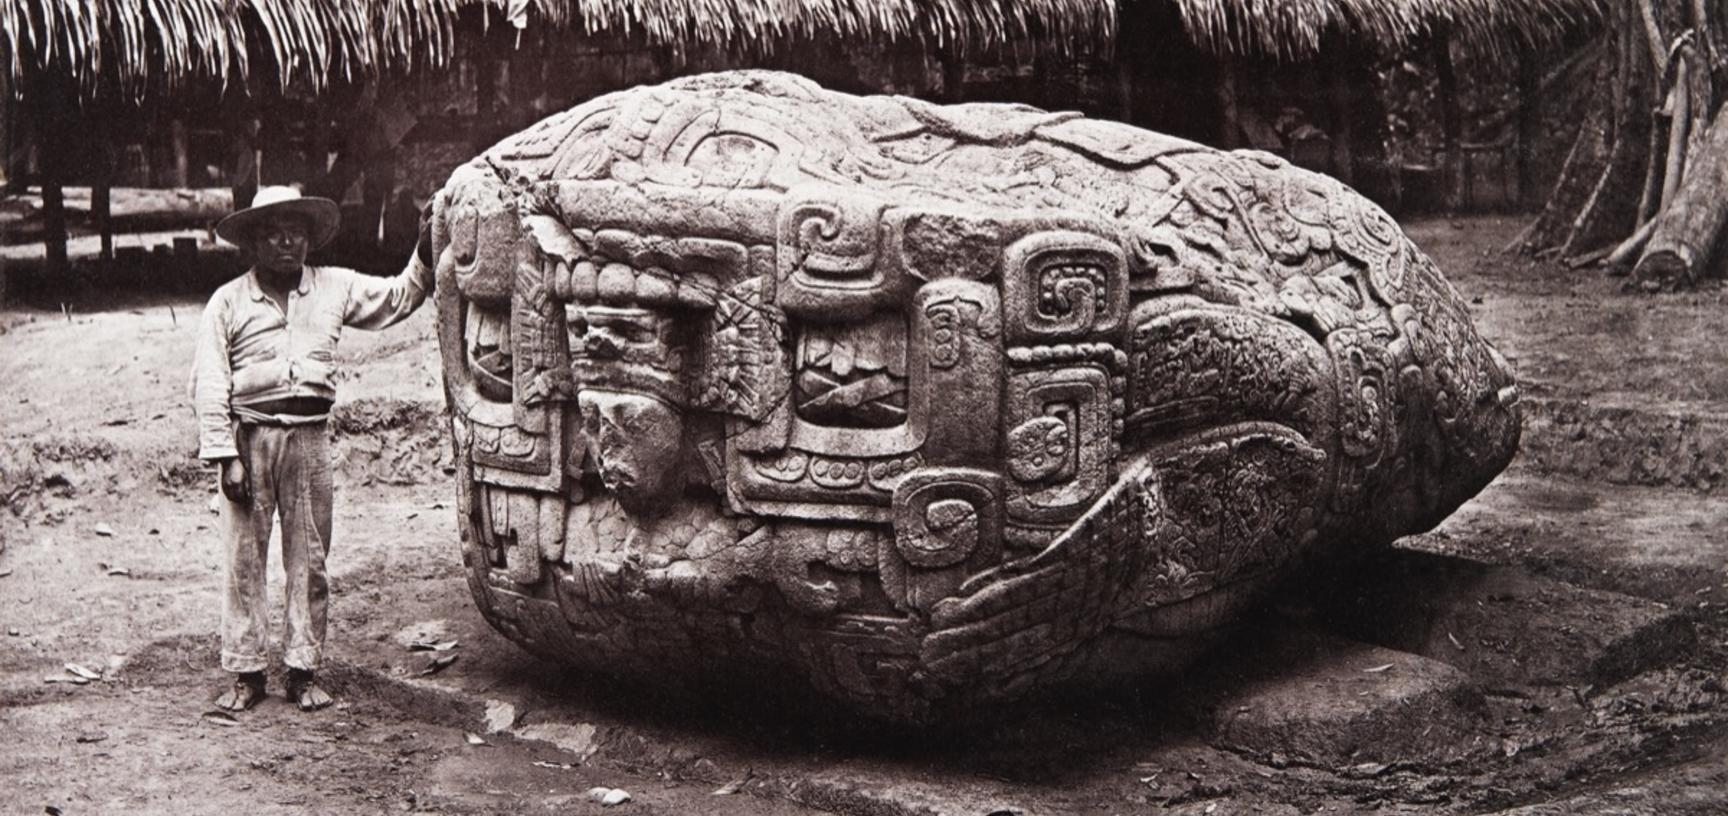 Zoomorph B (also known as Monument 2), south face, dated AD 780. Photograph by Alfred Maudslay. Quirigua, Guatemala. 1883.